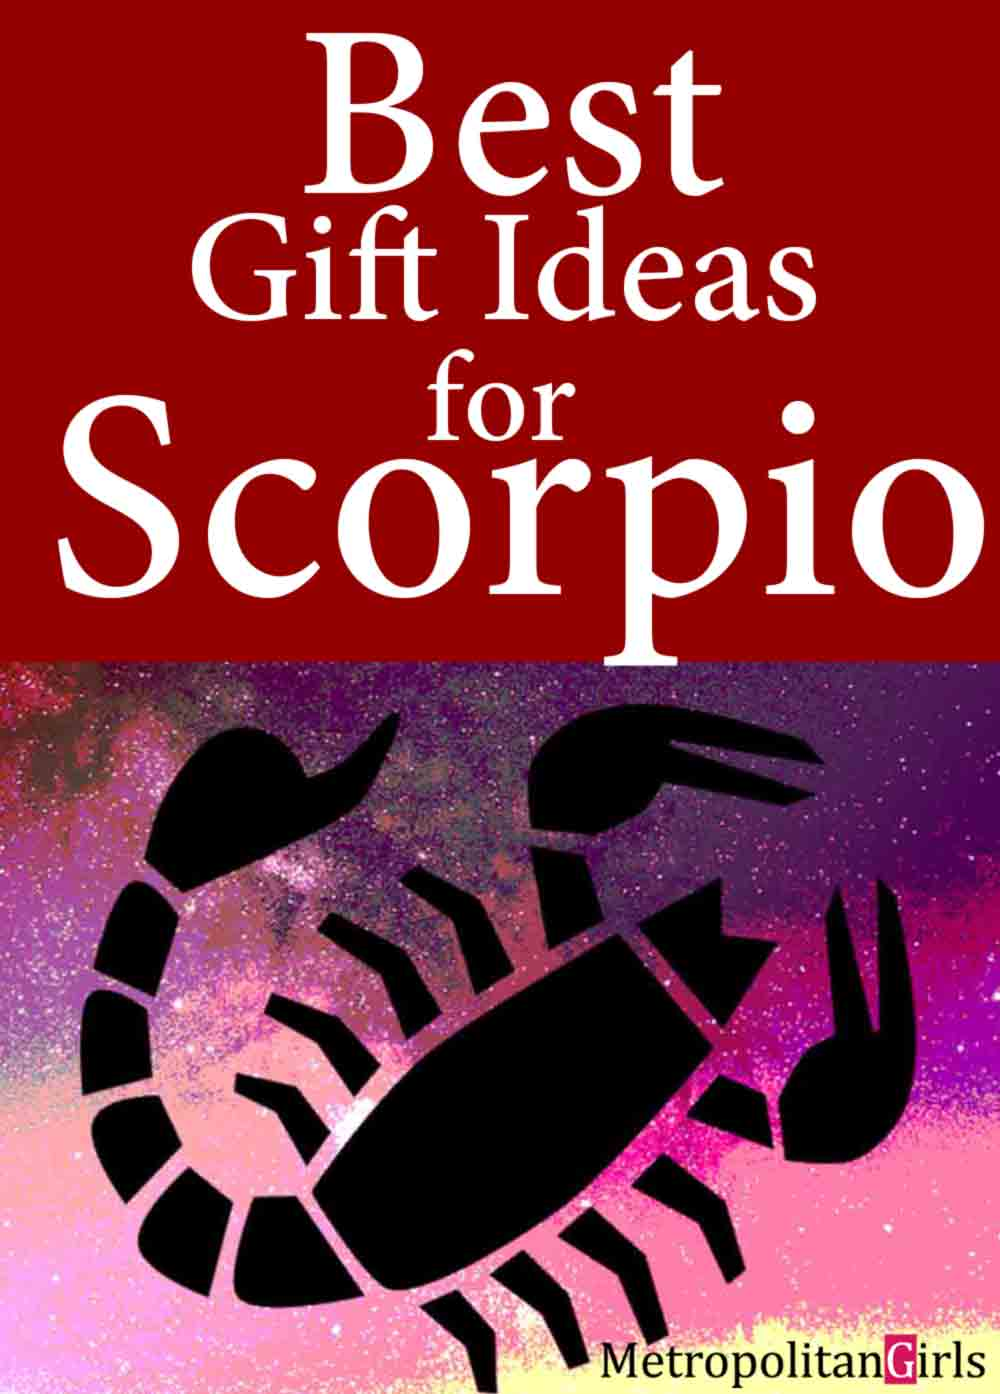 What kind of gifts do the men and women of Scorpio like? Find out in this gift ideas article for Scorpio.